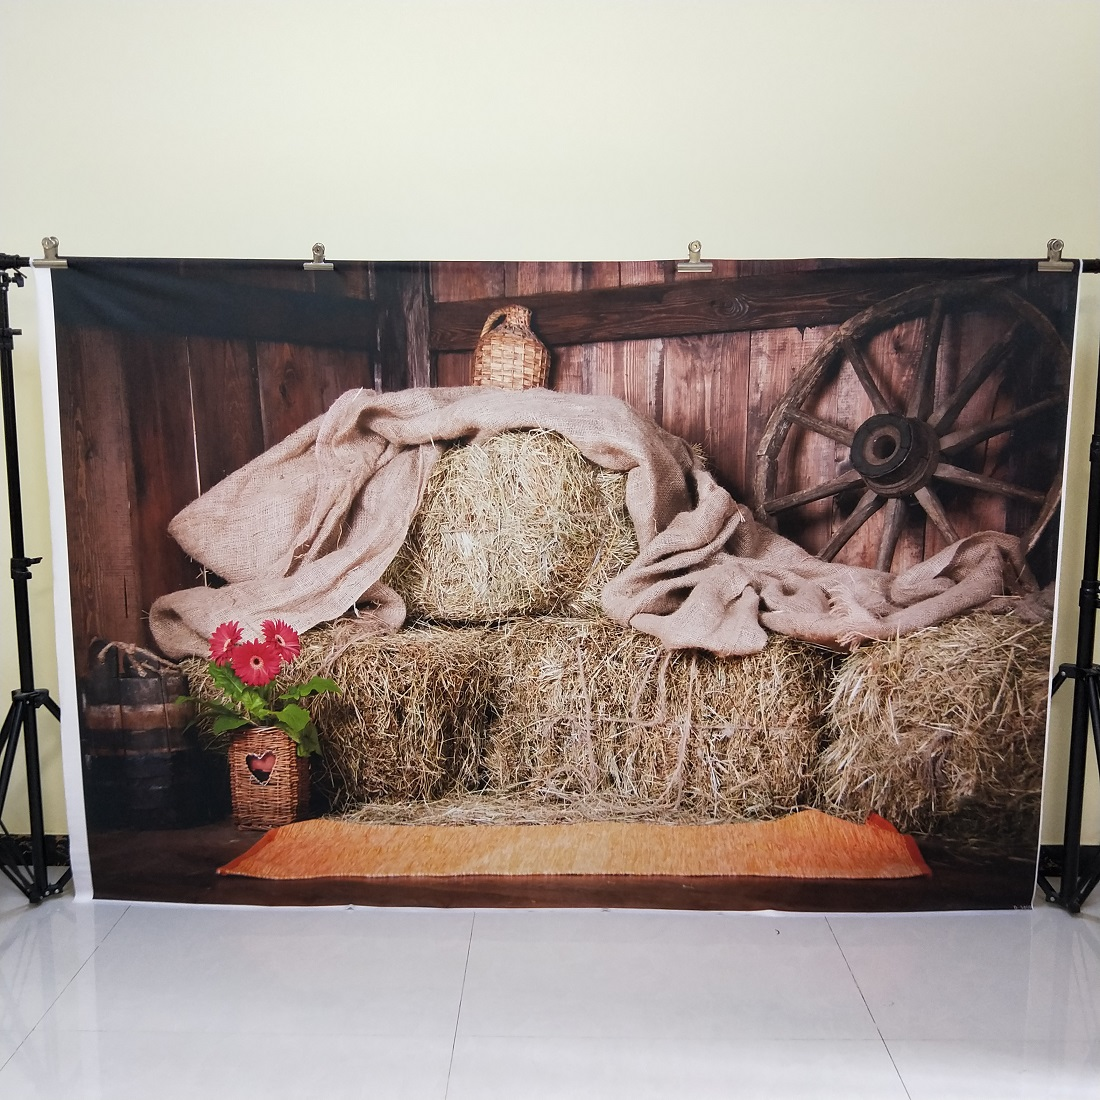 HUAYI 5x7ft Cotton Polyester Farm Haystack Photography Backdrop Washable Photo Studios Baby Props Background KP-037 huayi love photography backdrop scenery custom photo portrait studios background valentine s day backdrop xt4838